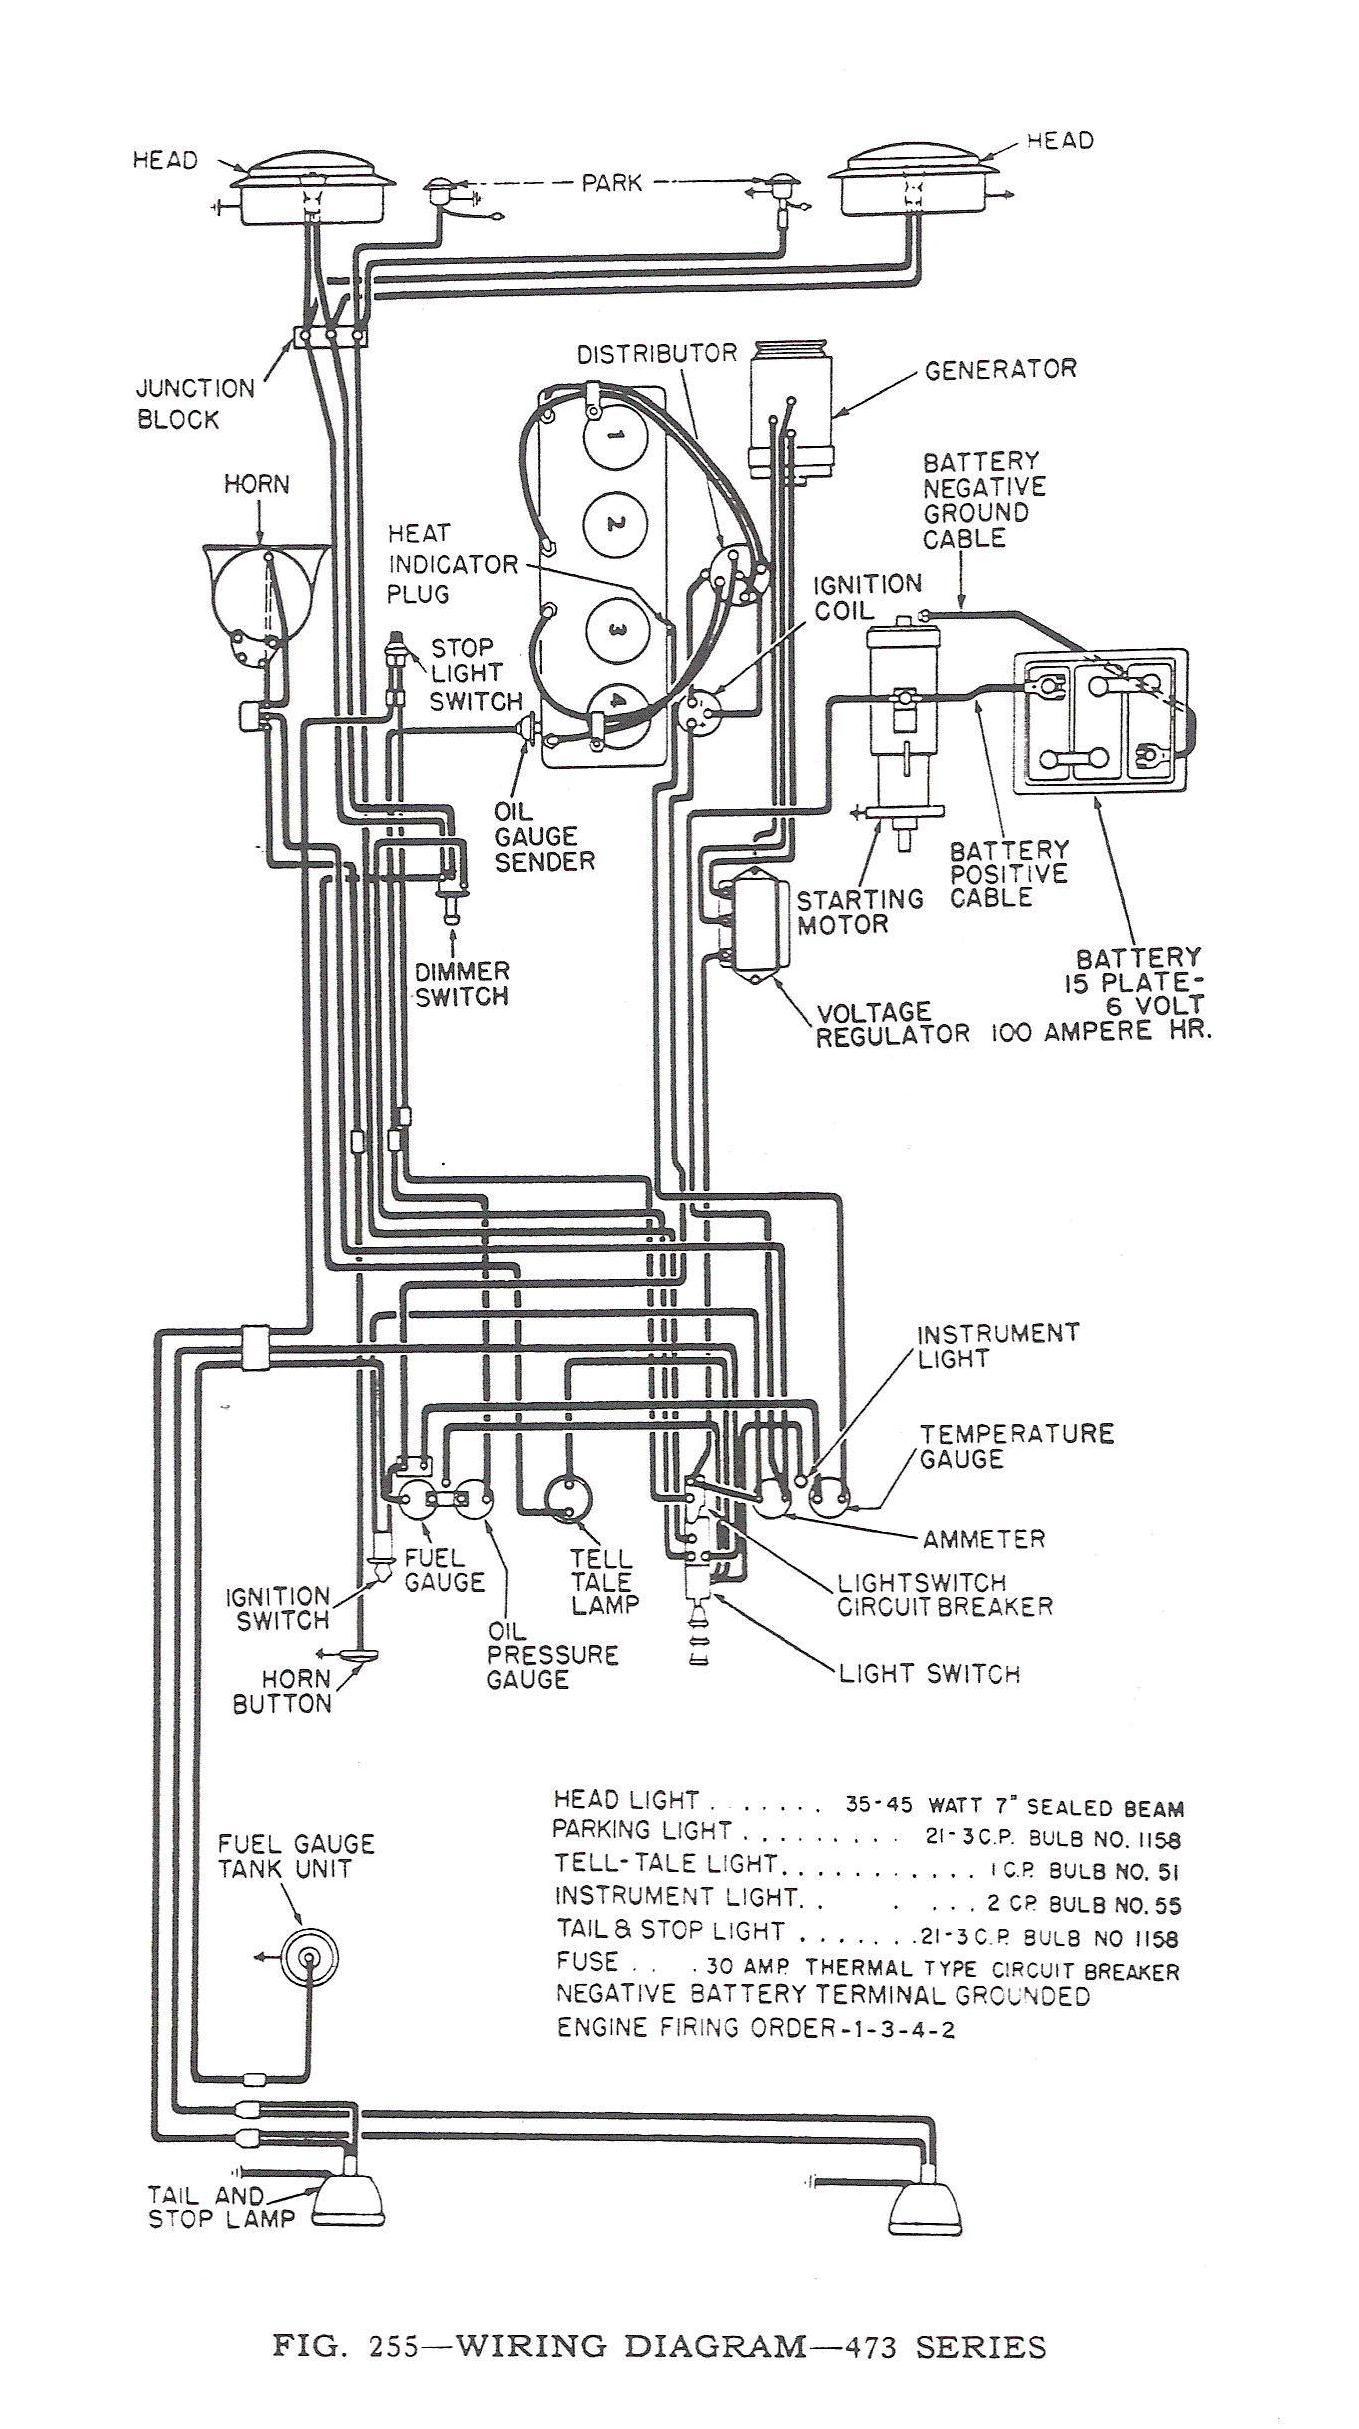 1948 jeepster wiring diagram  u2022 wiring diagram for free